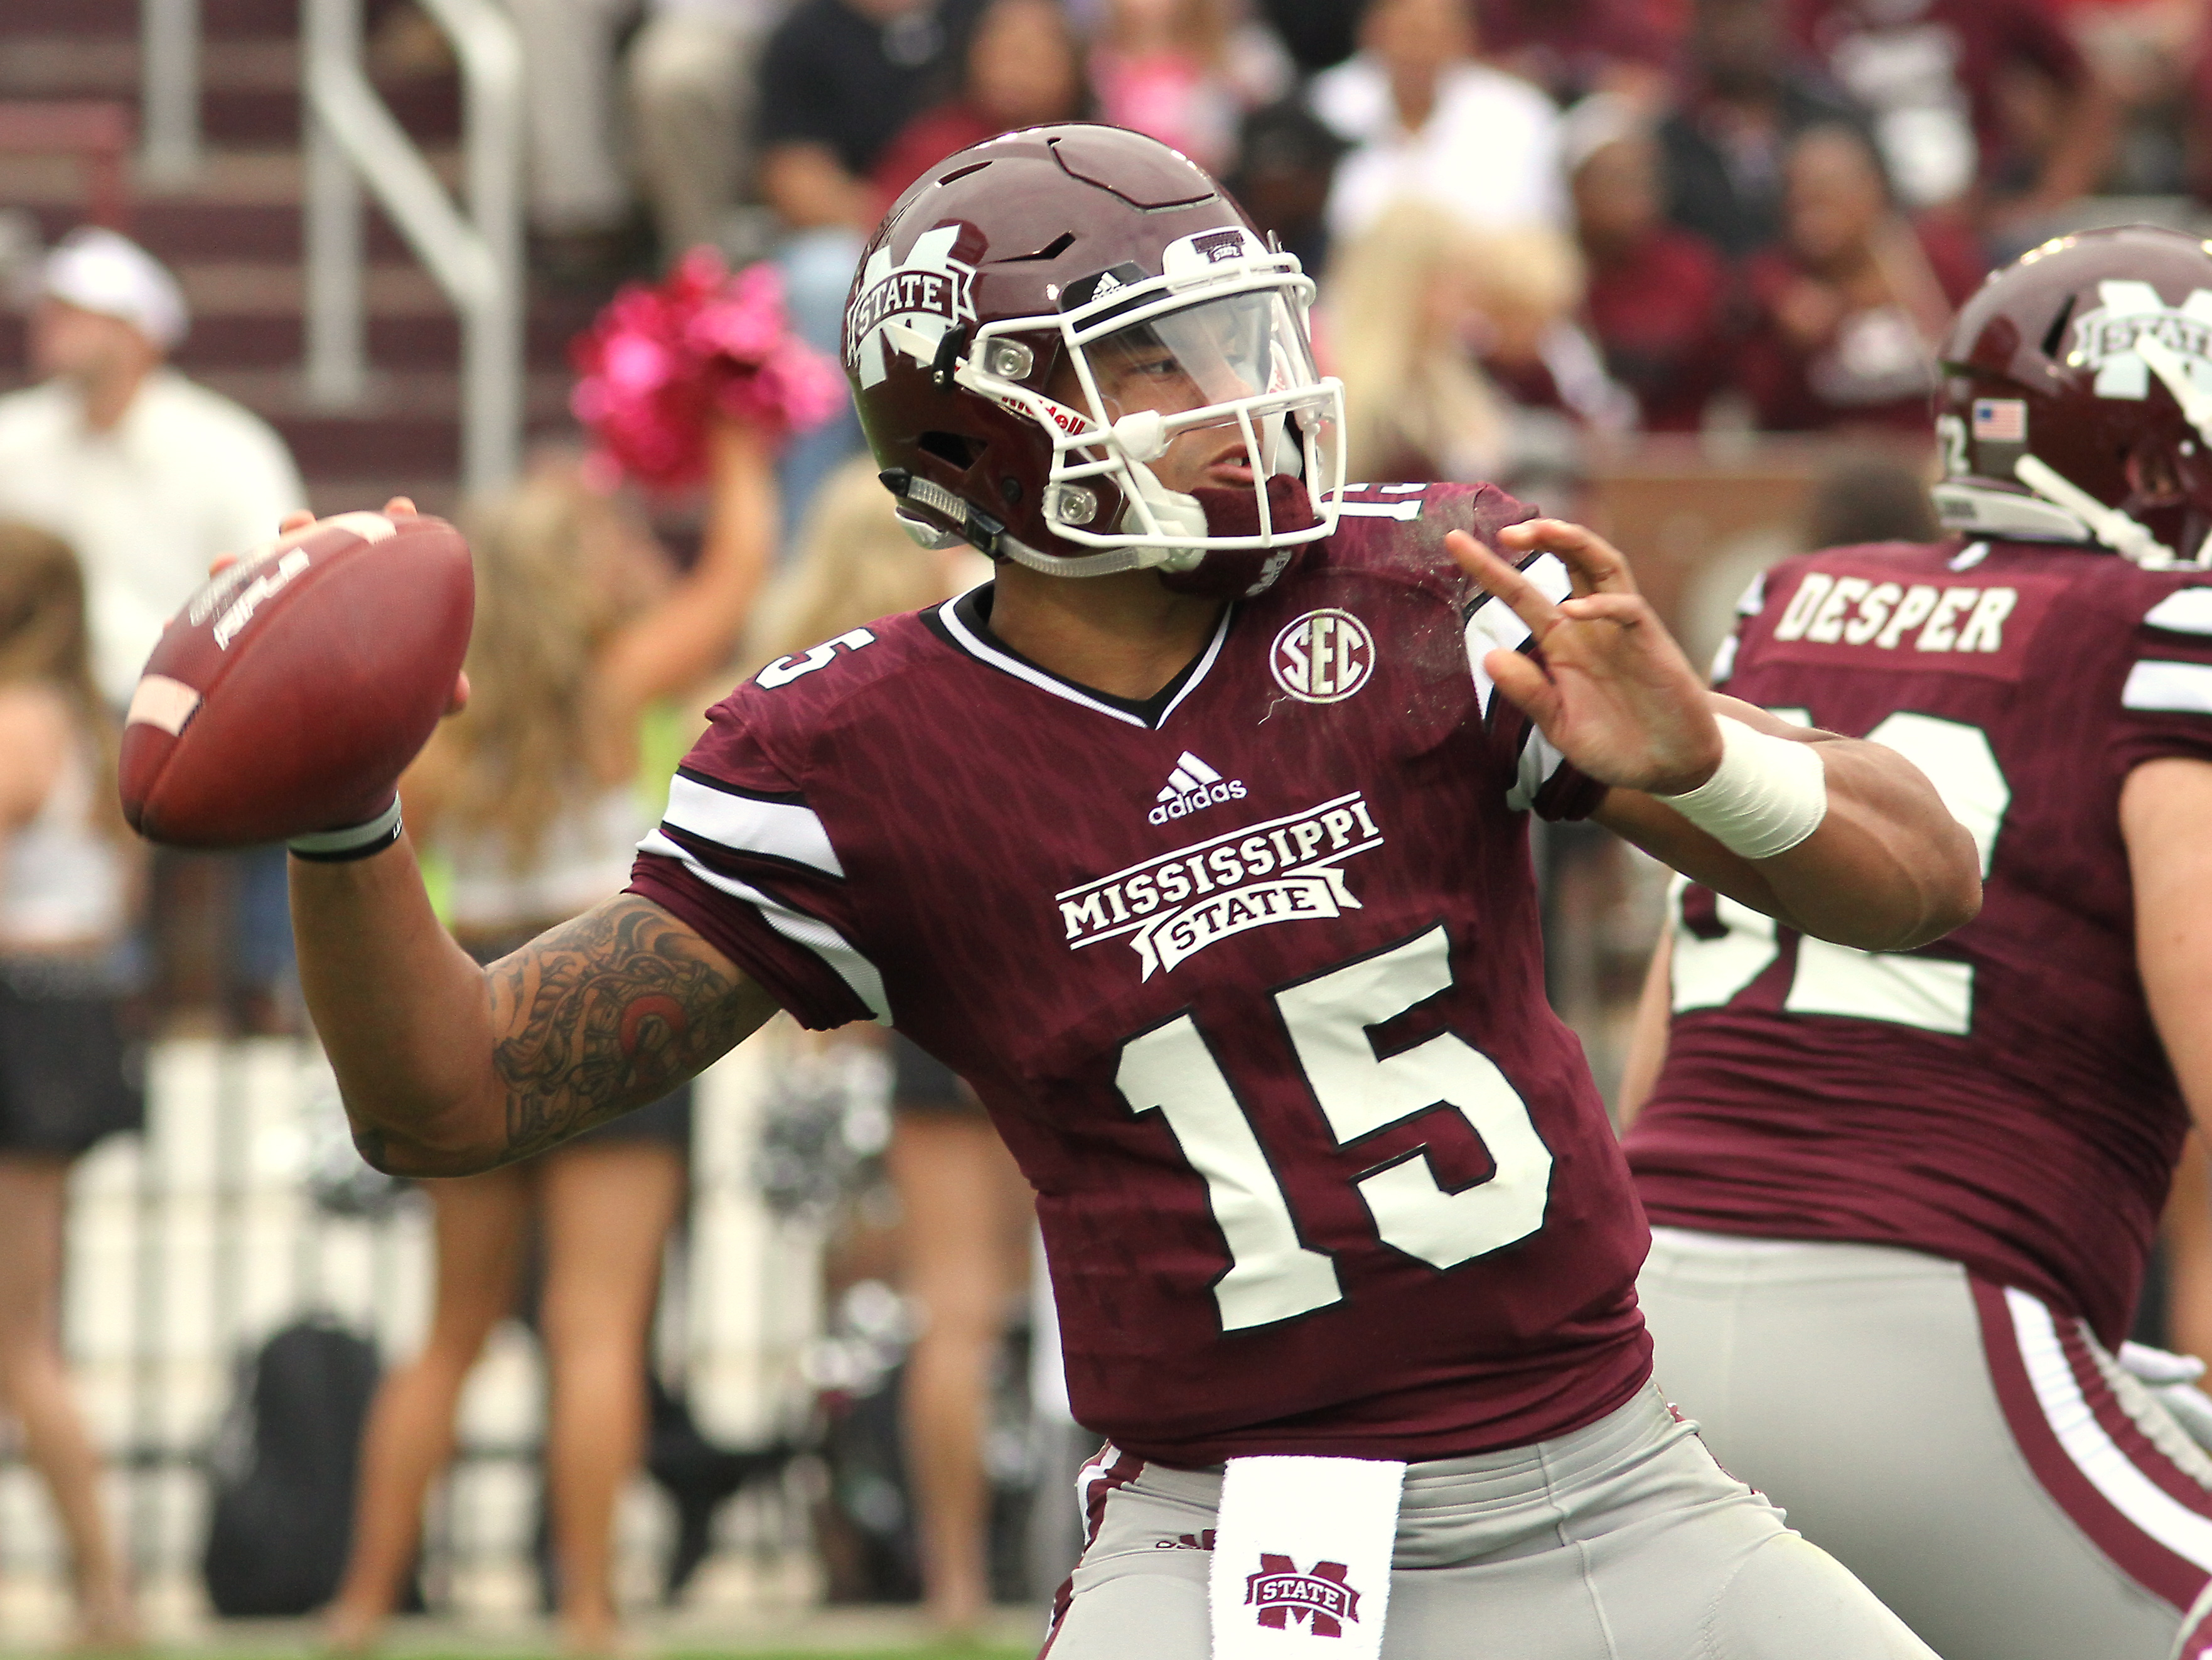 Mississippi State quarterback Dak Prescott (15) prepares to throw a pass during the first half of an NCAA college football game against Troy in Starkville, Miss., Saturday, Oct. 10, 2015.(AP Photo/Jim Lytle)